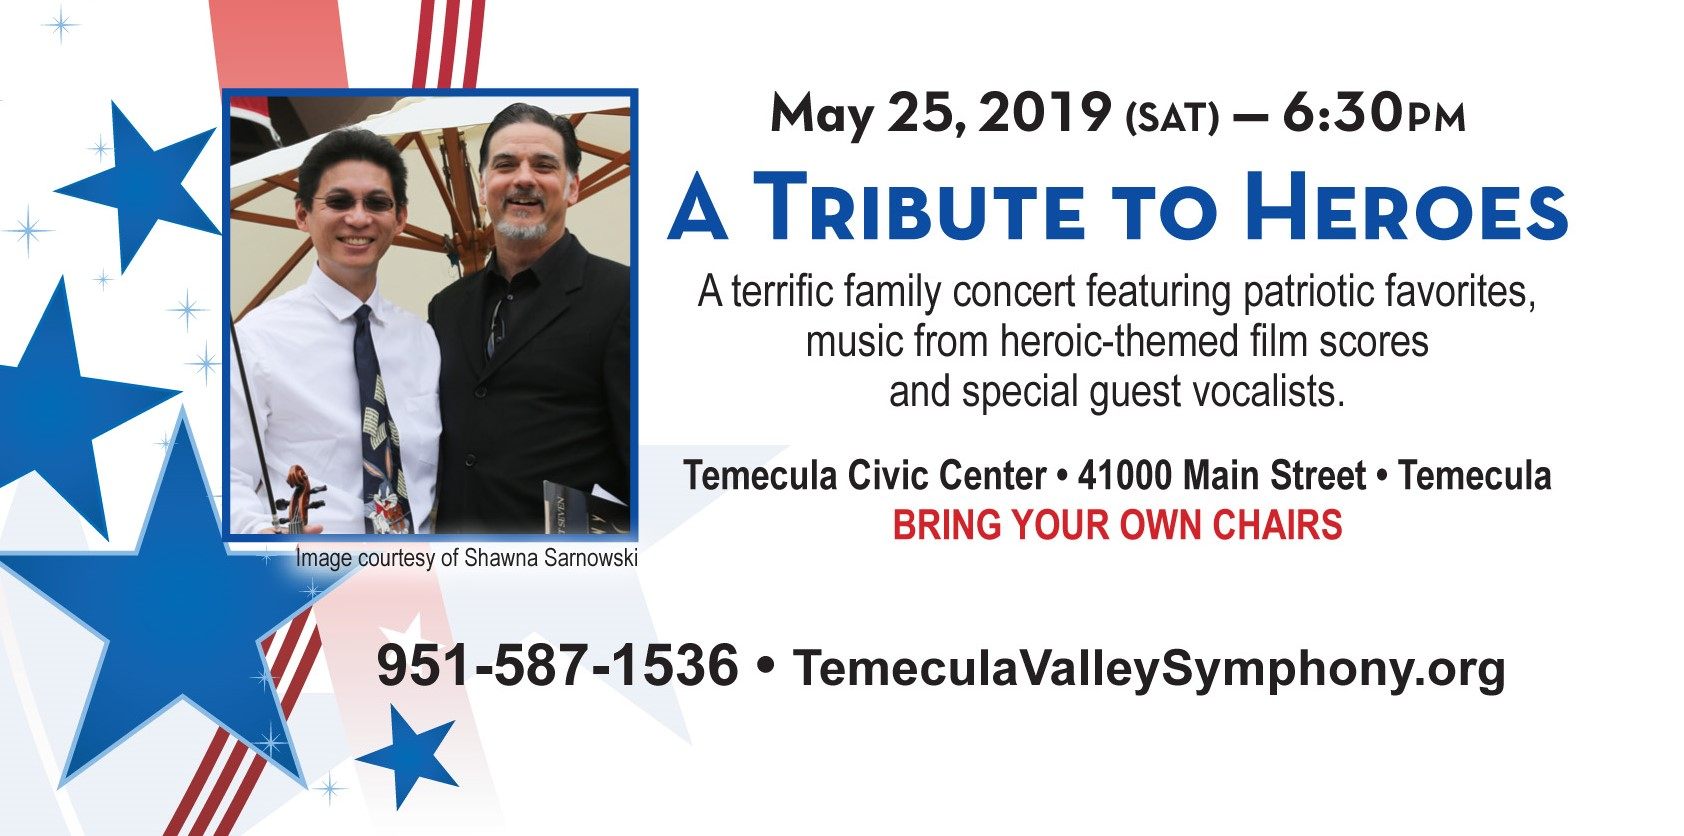 A TRIBUTE TO HEROES! @ Temecula Civic Center